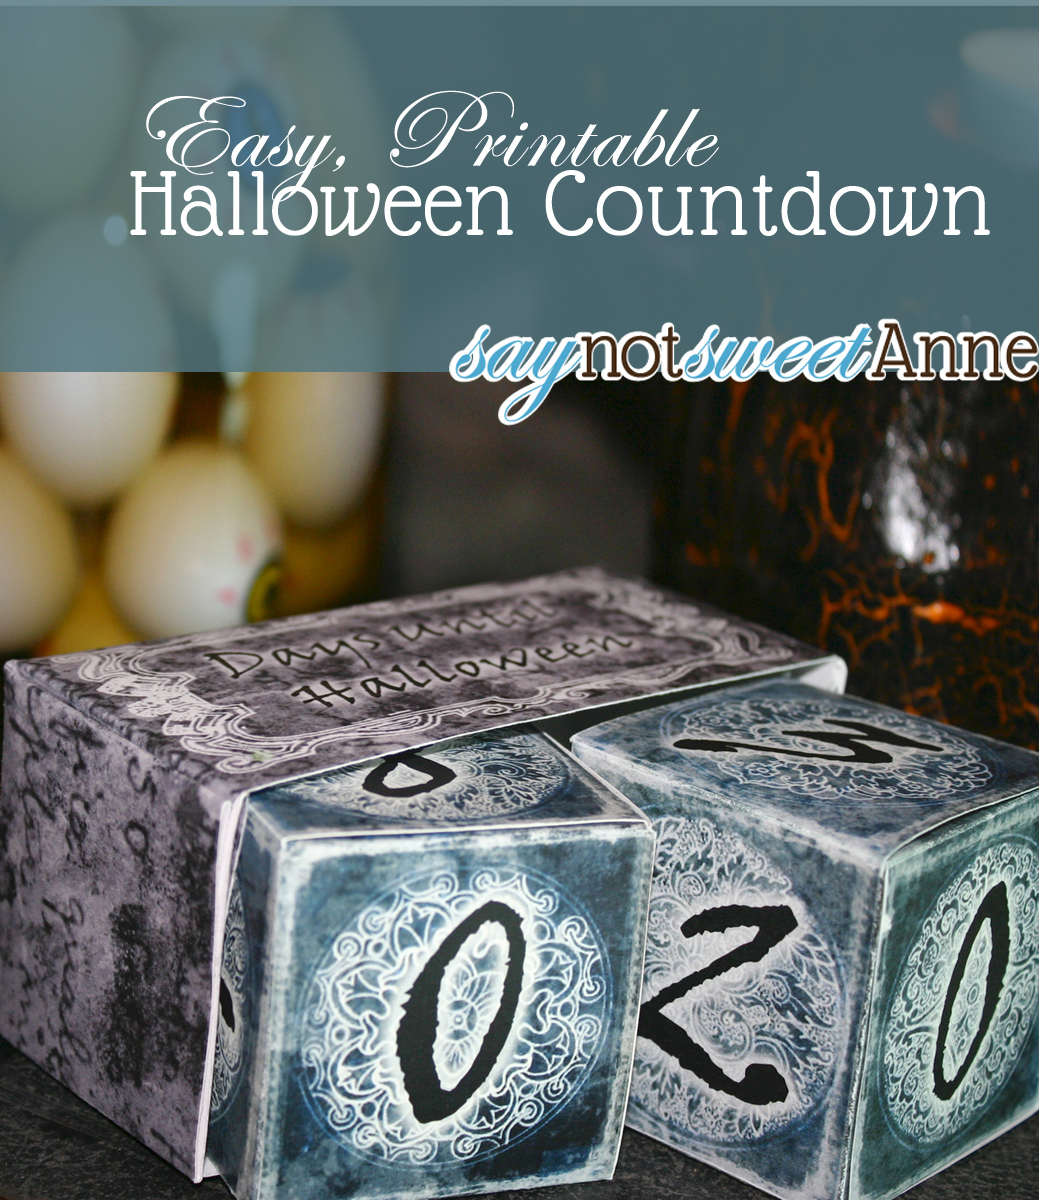 Free 3D Print and Fold Halloween Countdown! #halloween #decor from Saynotsweetanne.com